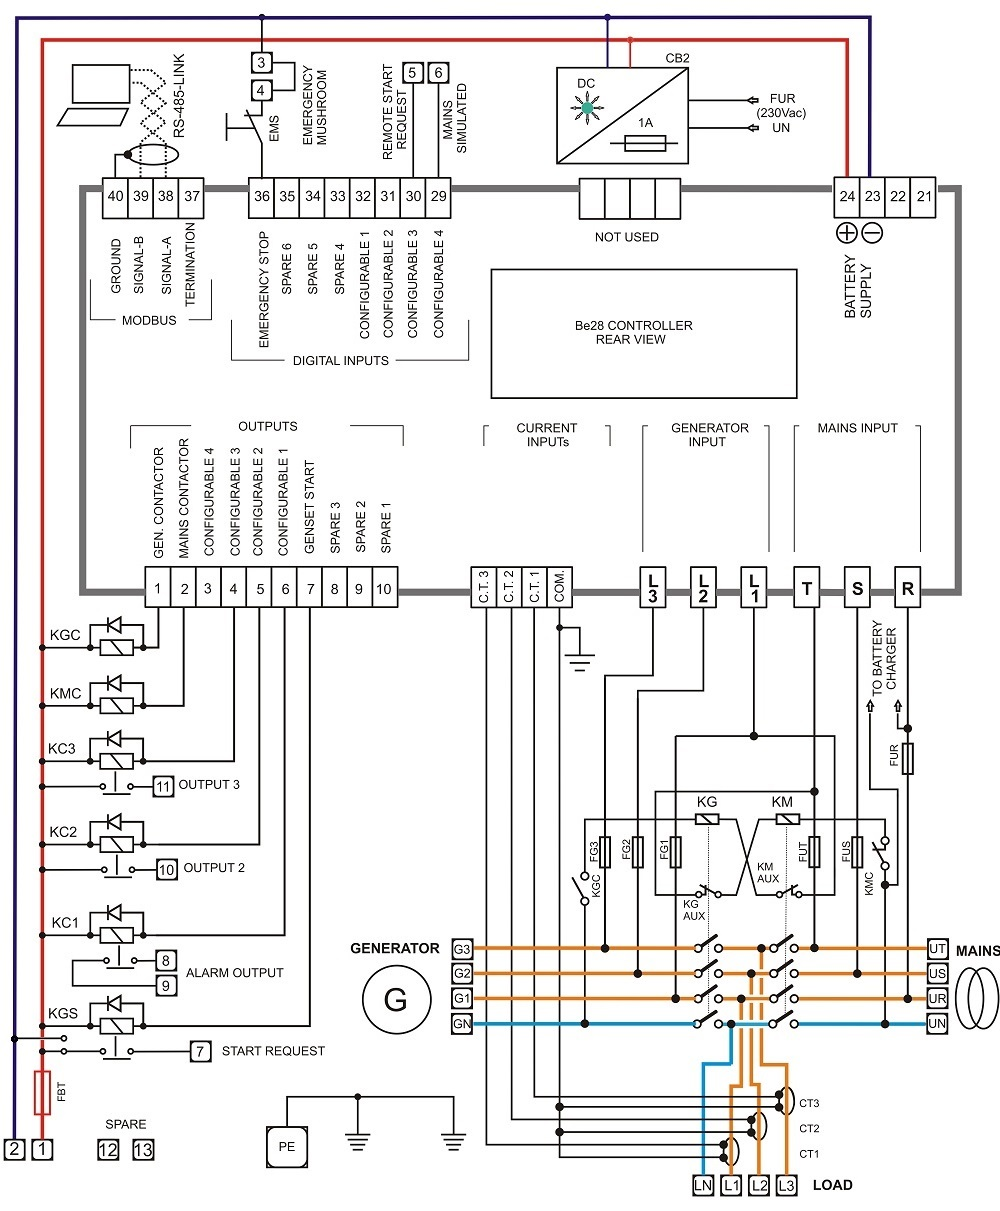 Citroen C5 Wiper Wiring Diagram - Chevy 2 Ecotec Wiring Diagrams Schematics  - fusebox.yenpancane.jeanjaures37.fr | Citroen C5 Wiper Wiring Diagram |  | Wiring Diagram Resource